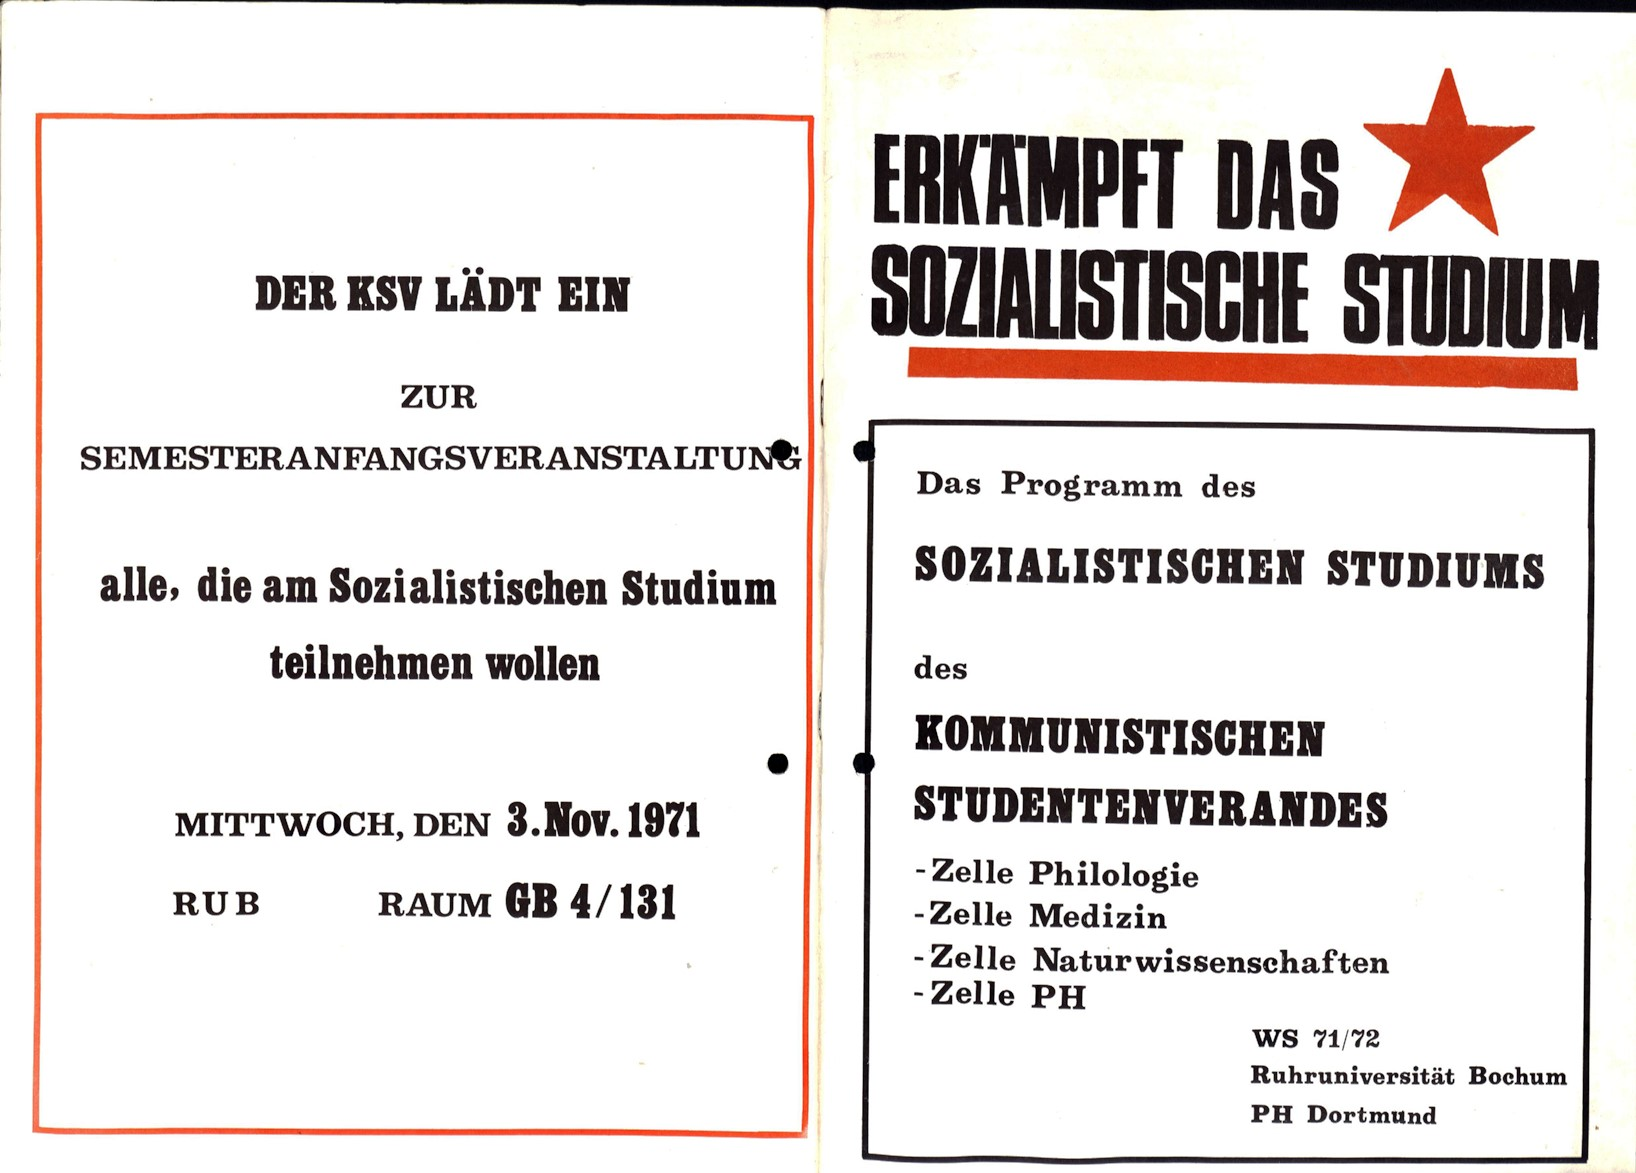 BO_DO_KSV_1971_Programm_Sozialistisches_Studium_01